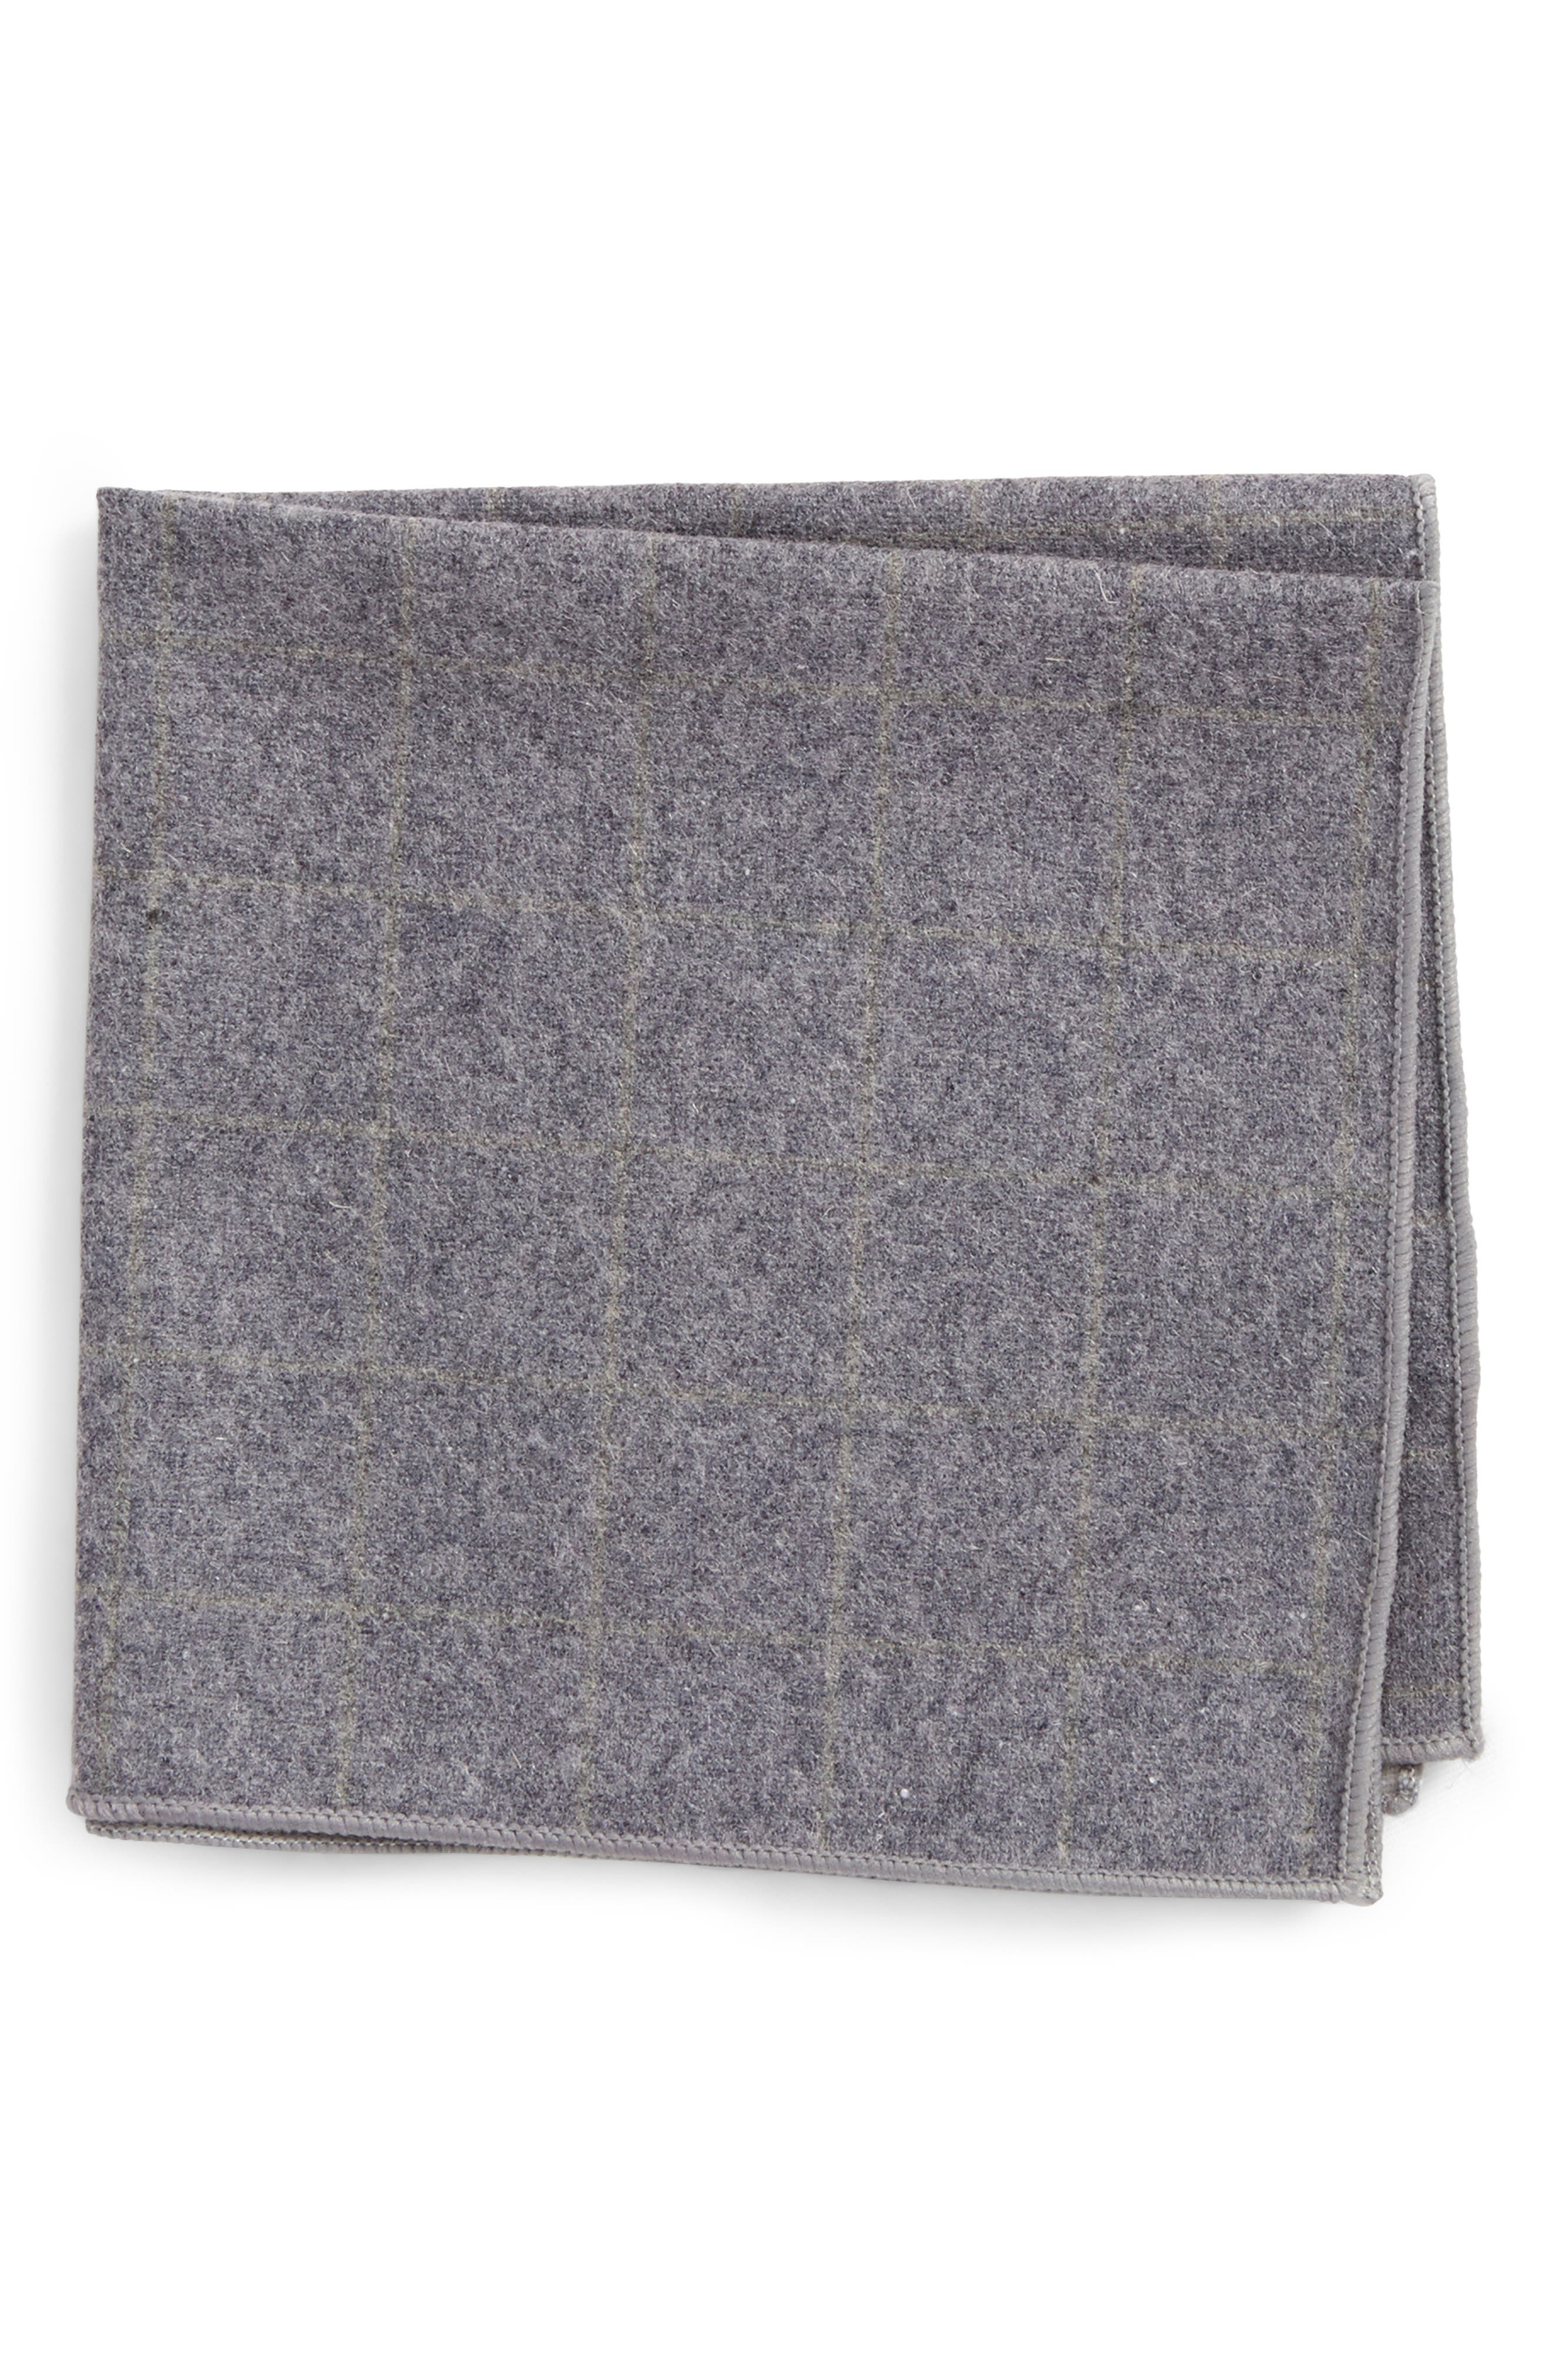 Alternate Image 1 Selected - The Tie Bar Flannel Pocket Square